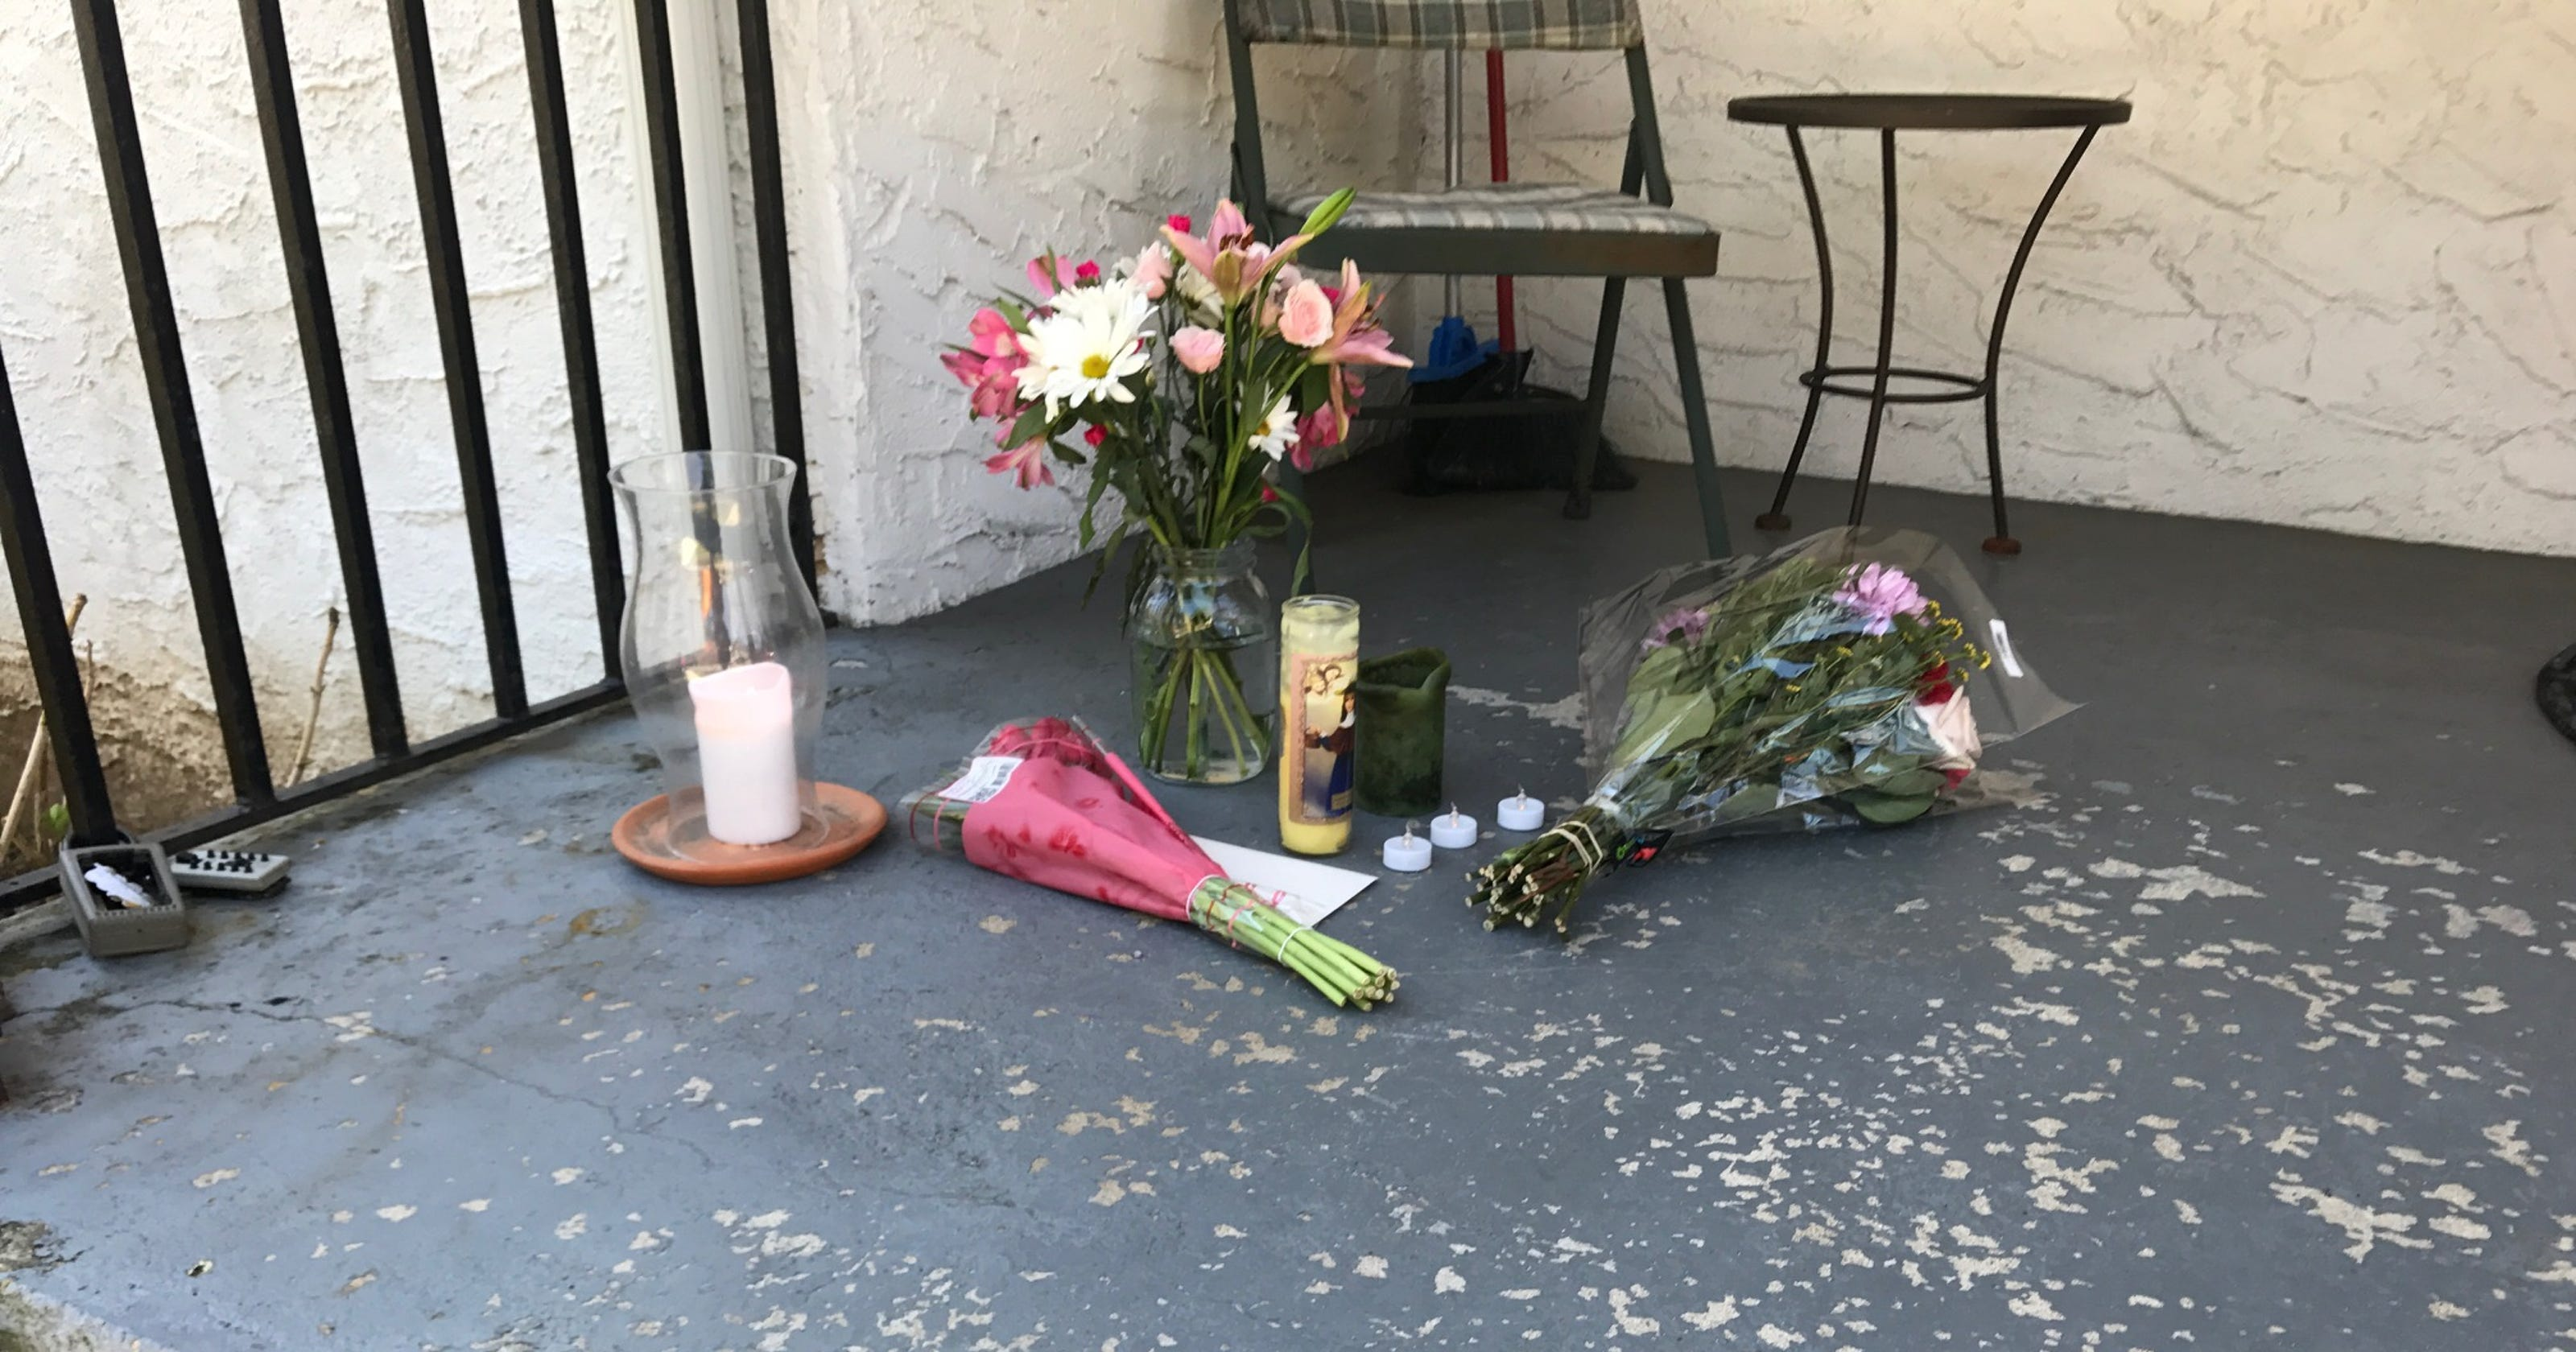 Mamaroneck Death Gofundme Page Set Up As Questions Linger